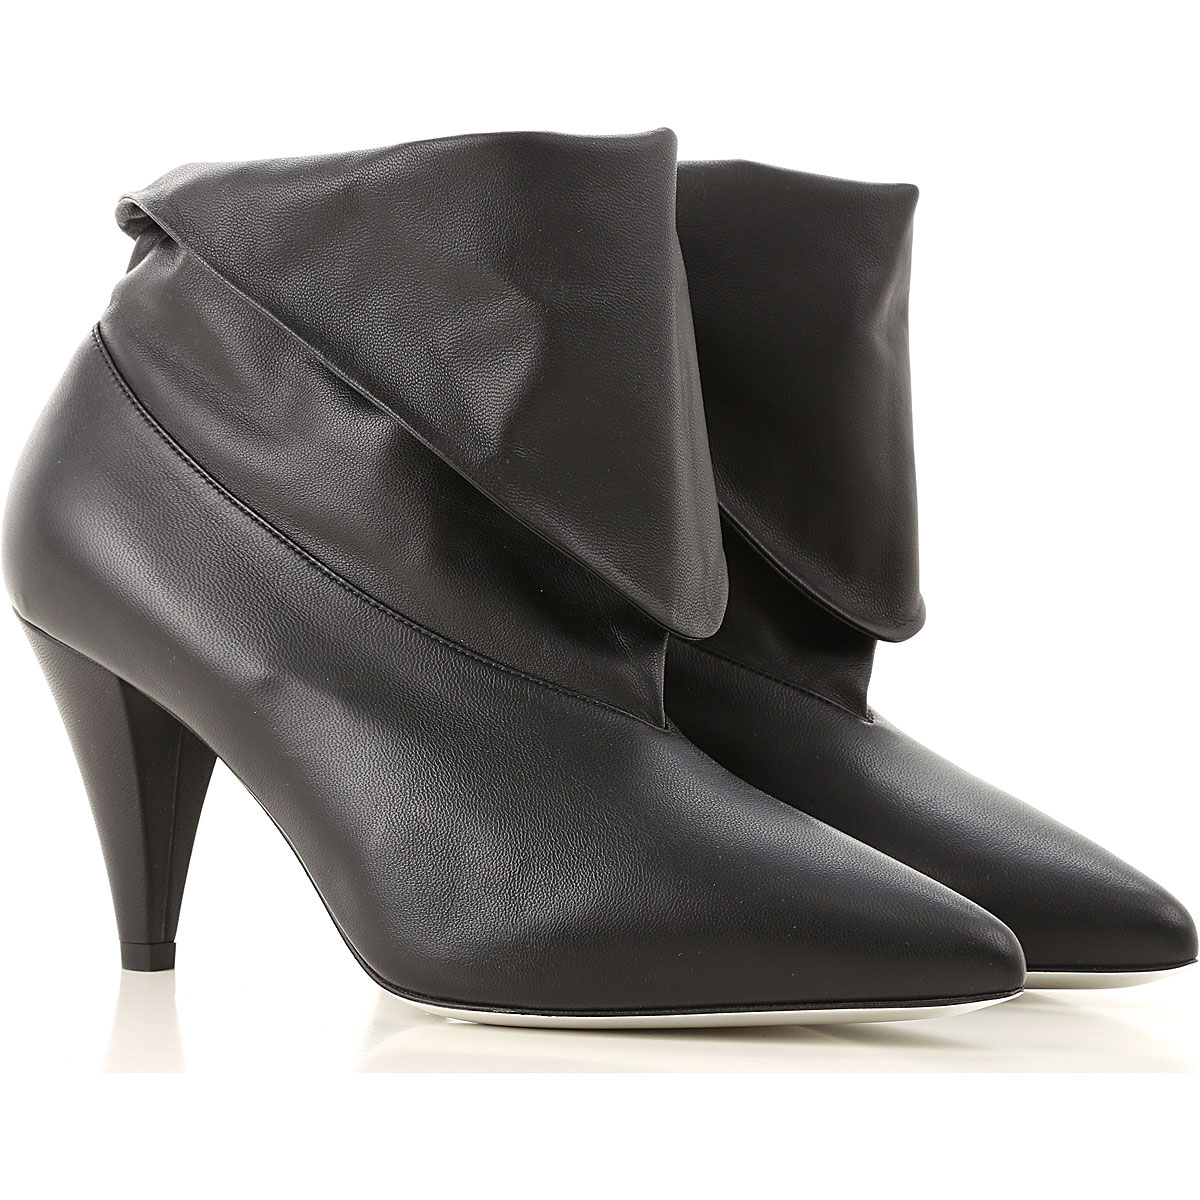 Givenchy Boots for Women, Booties On Sale in Outlet, Black, Leather, 2019, 7 8